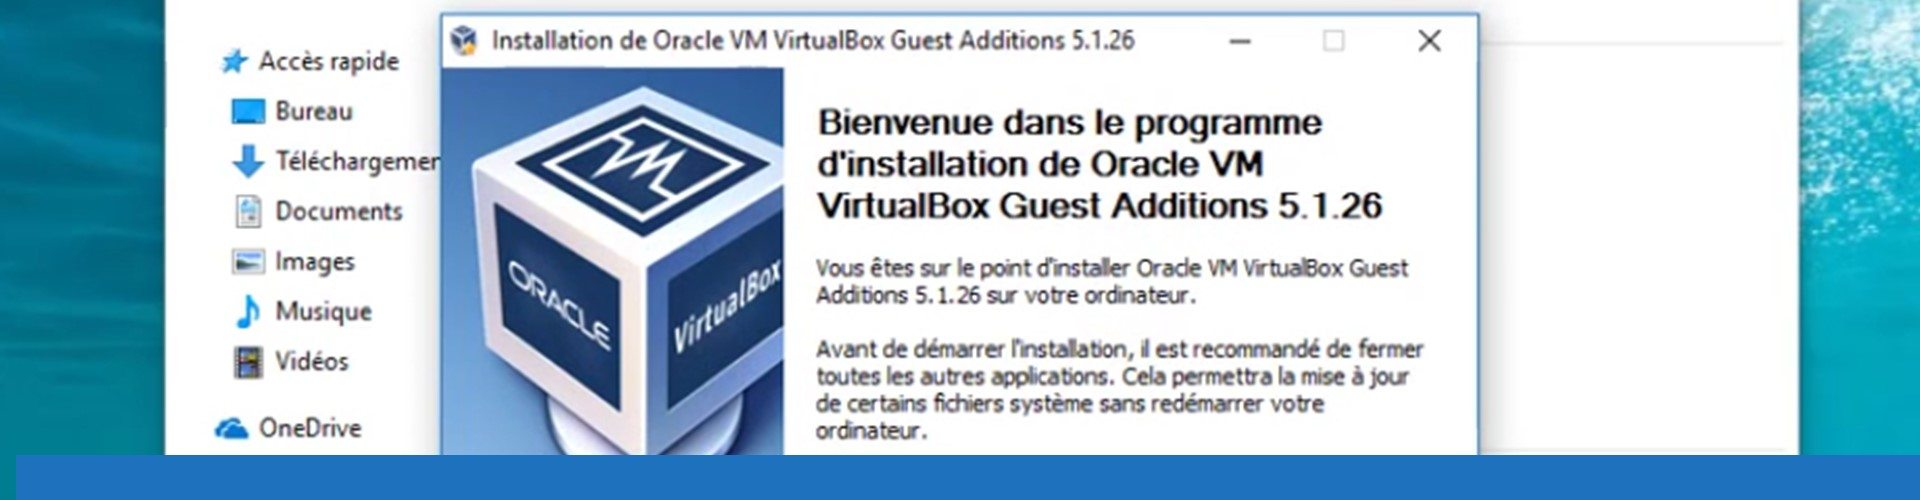 Installer les additions invité